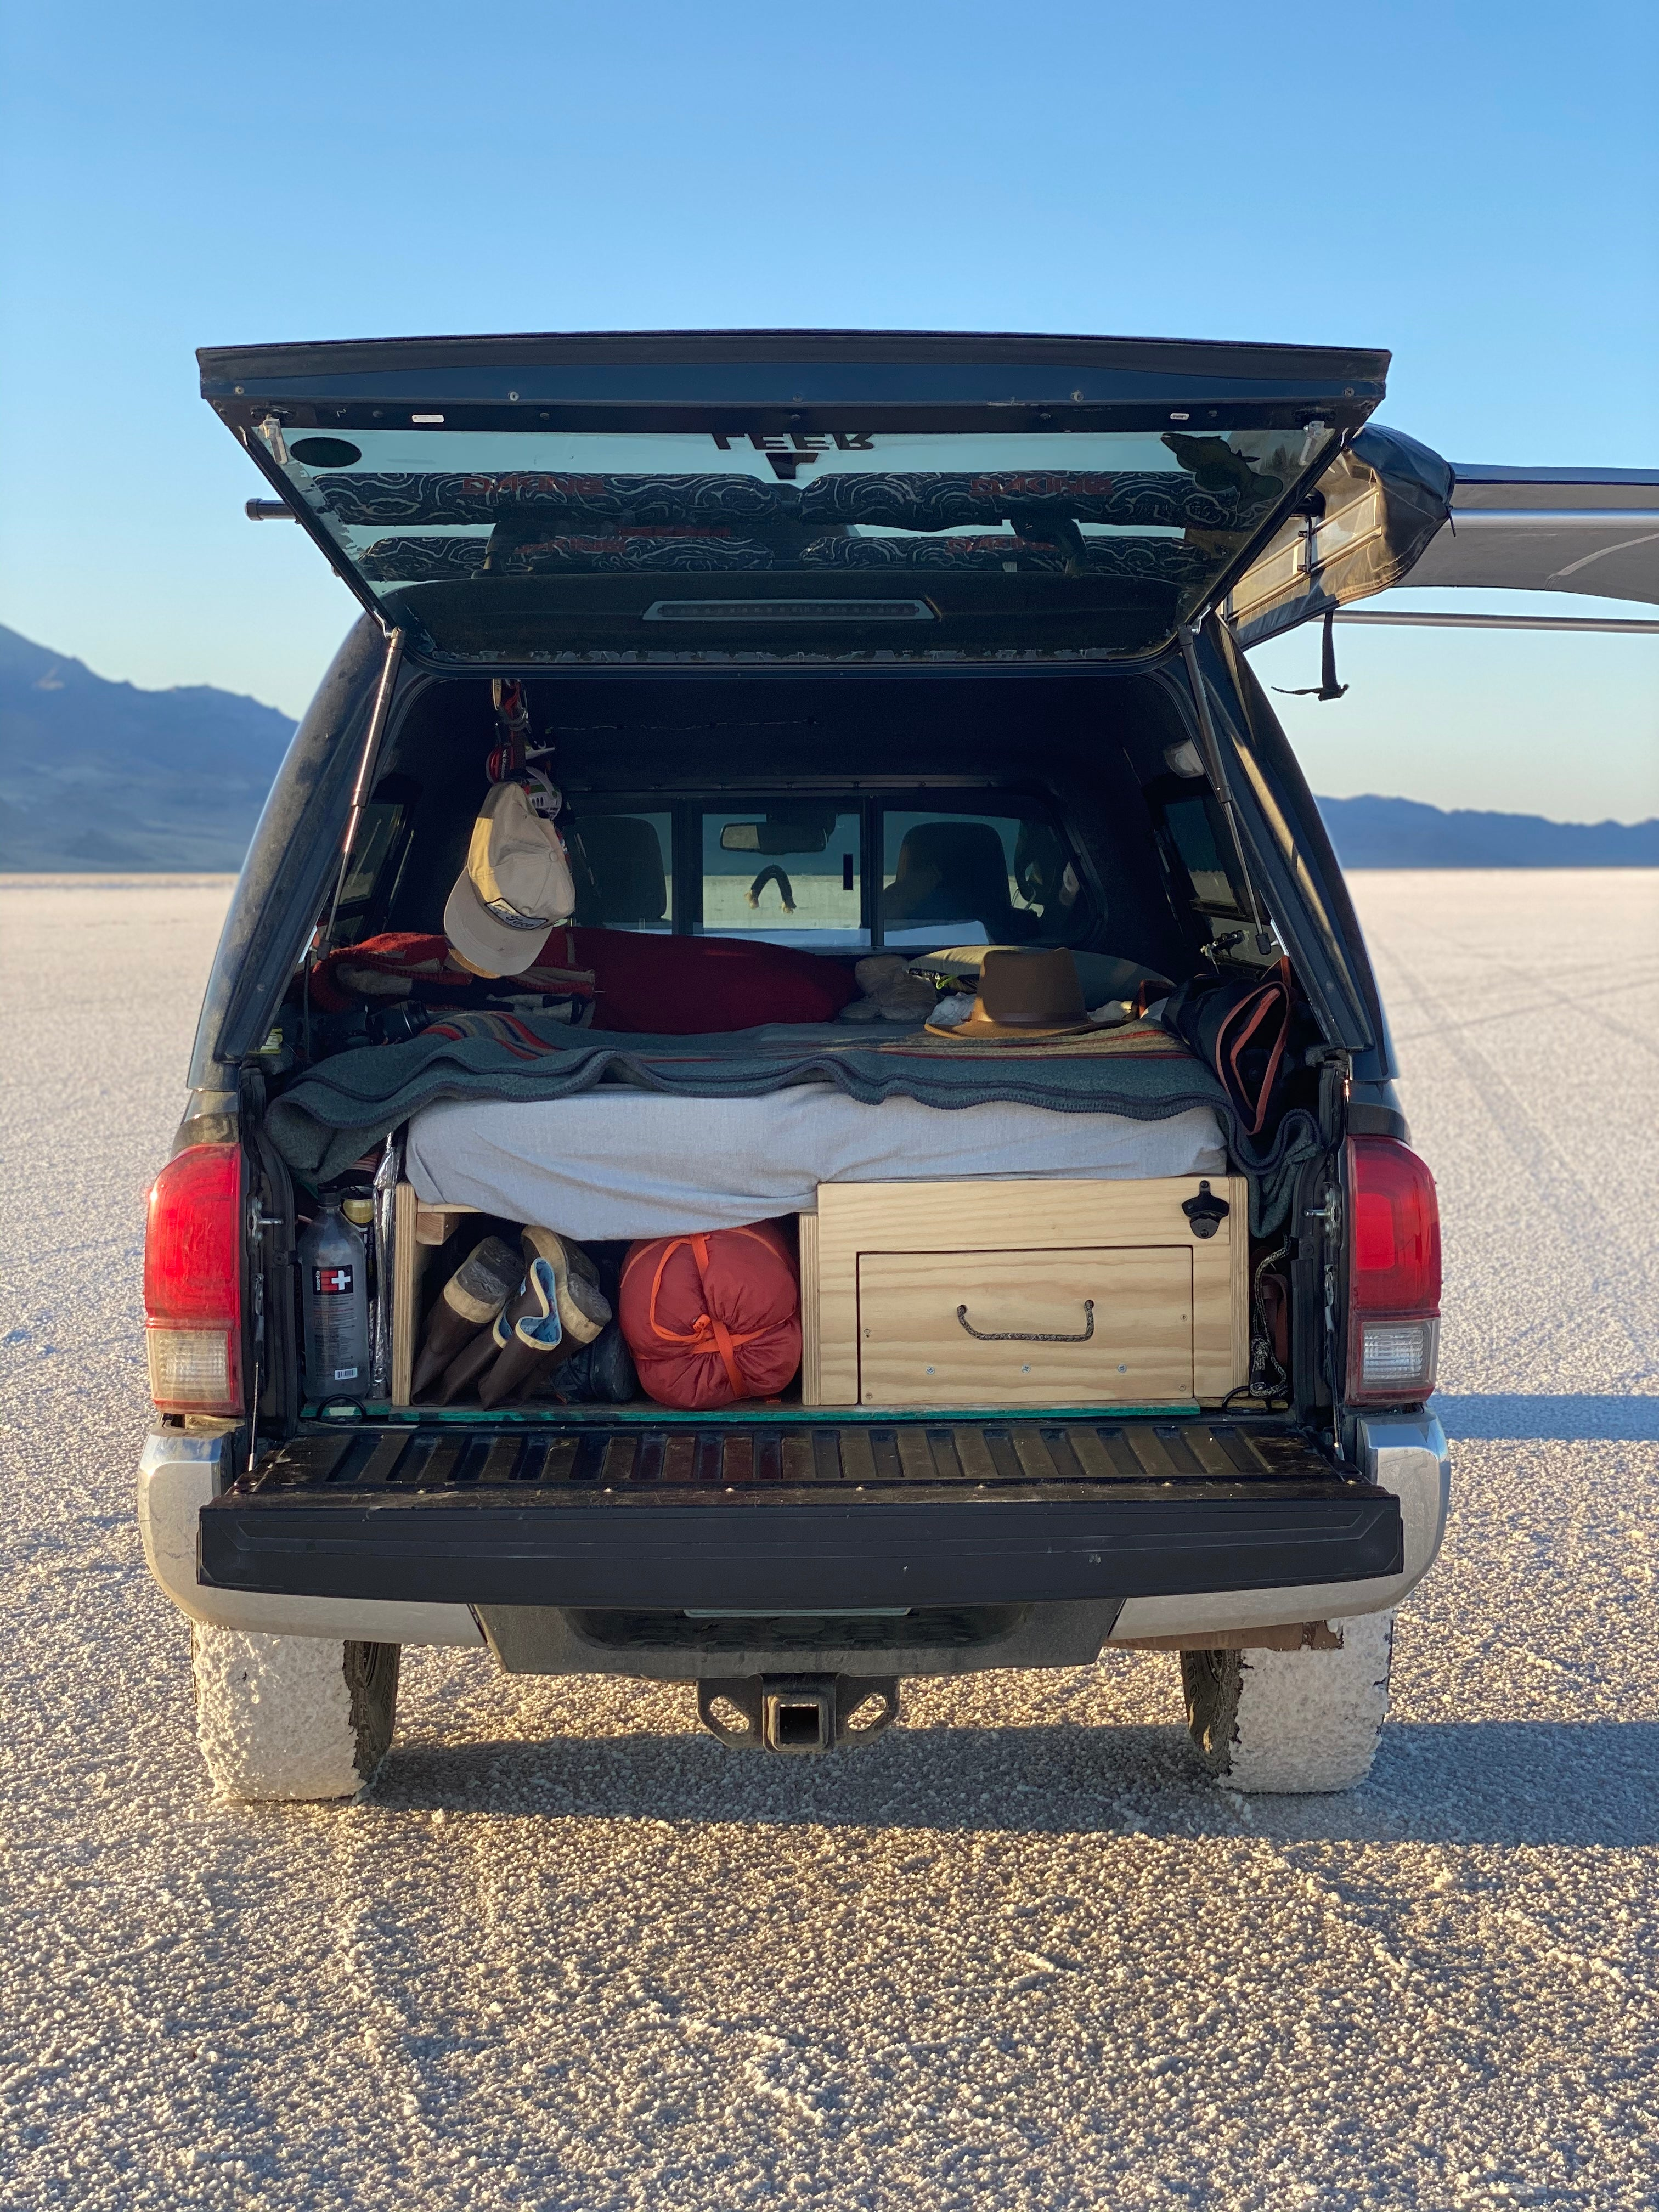 Pand-epic: How Two Adventurers Turned Furloughs Into an All-Time Road Trip - Car Camping Desert